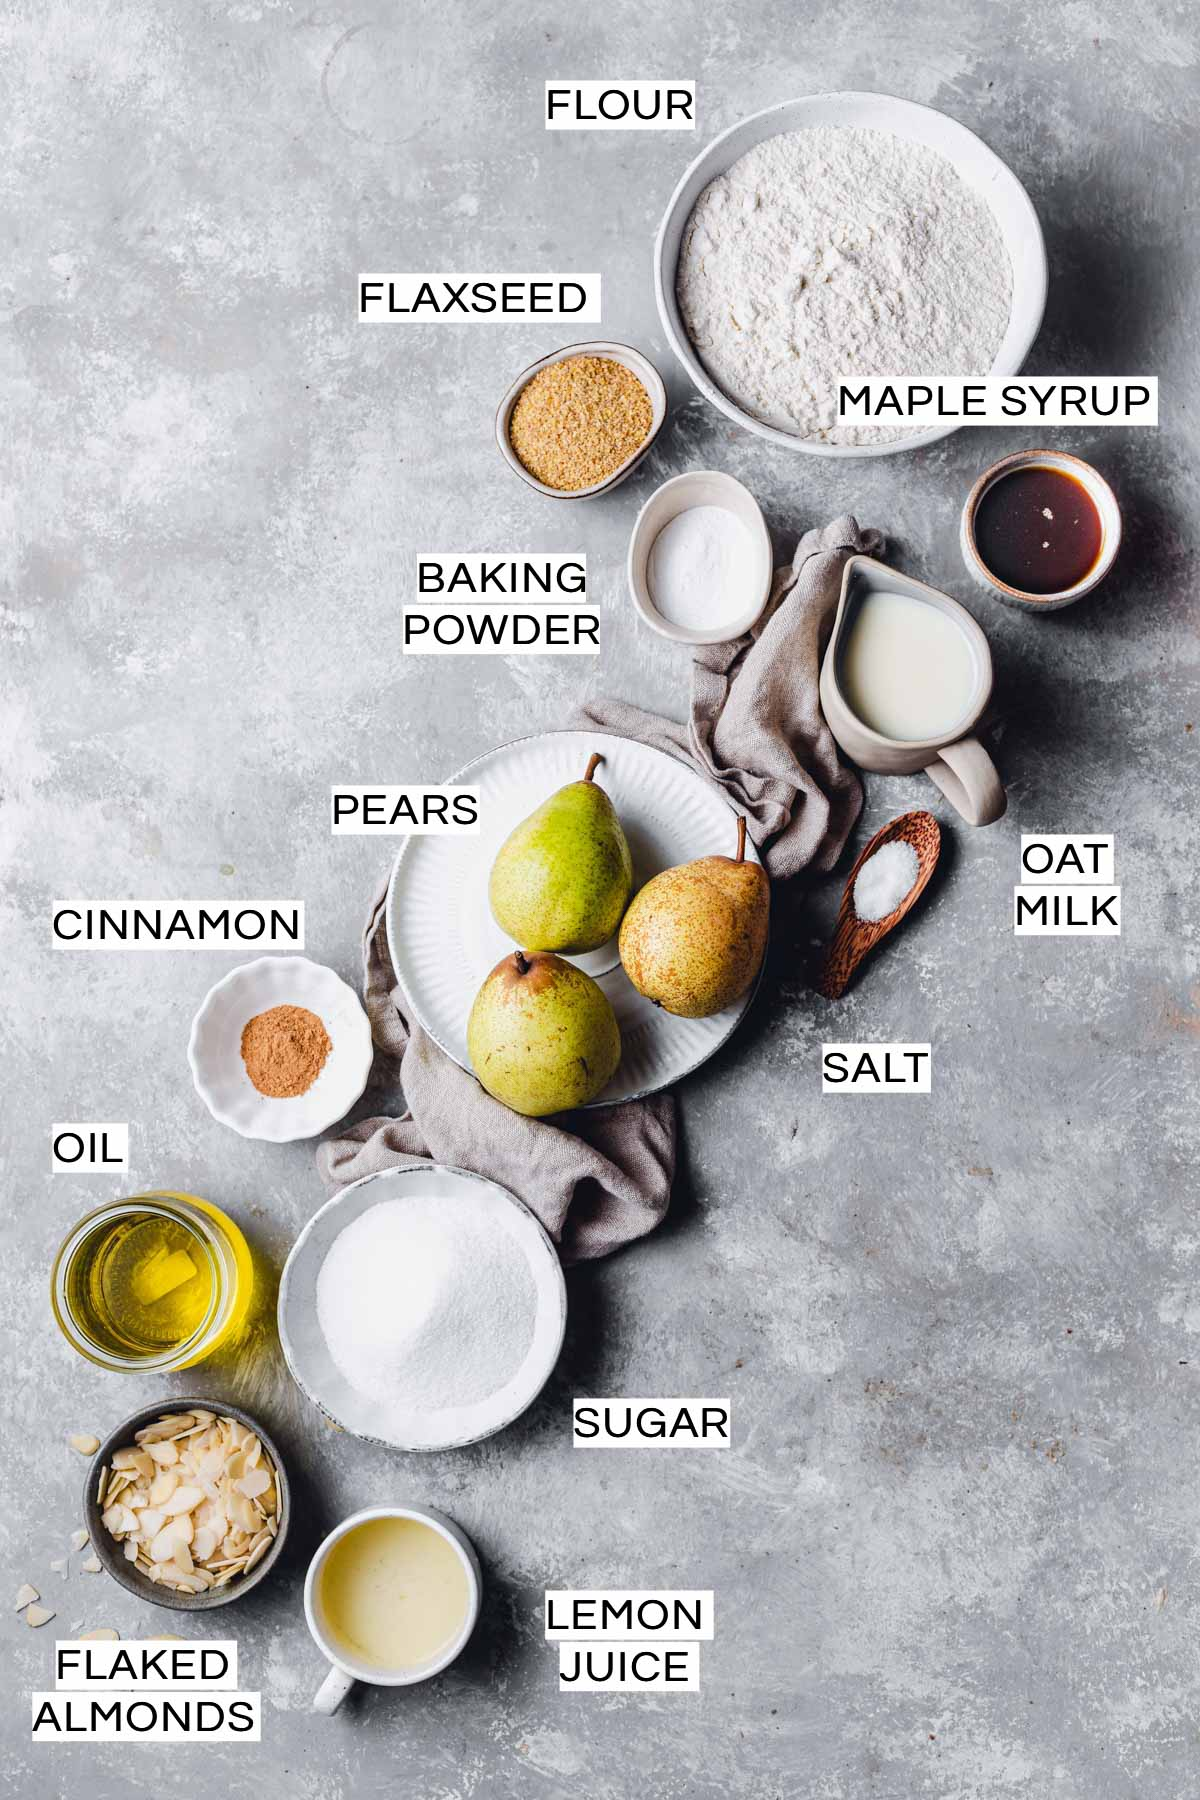 Various ingredients needed to make a vegan pear cake laid out on a grey surface.